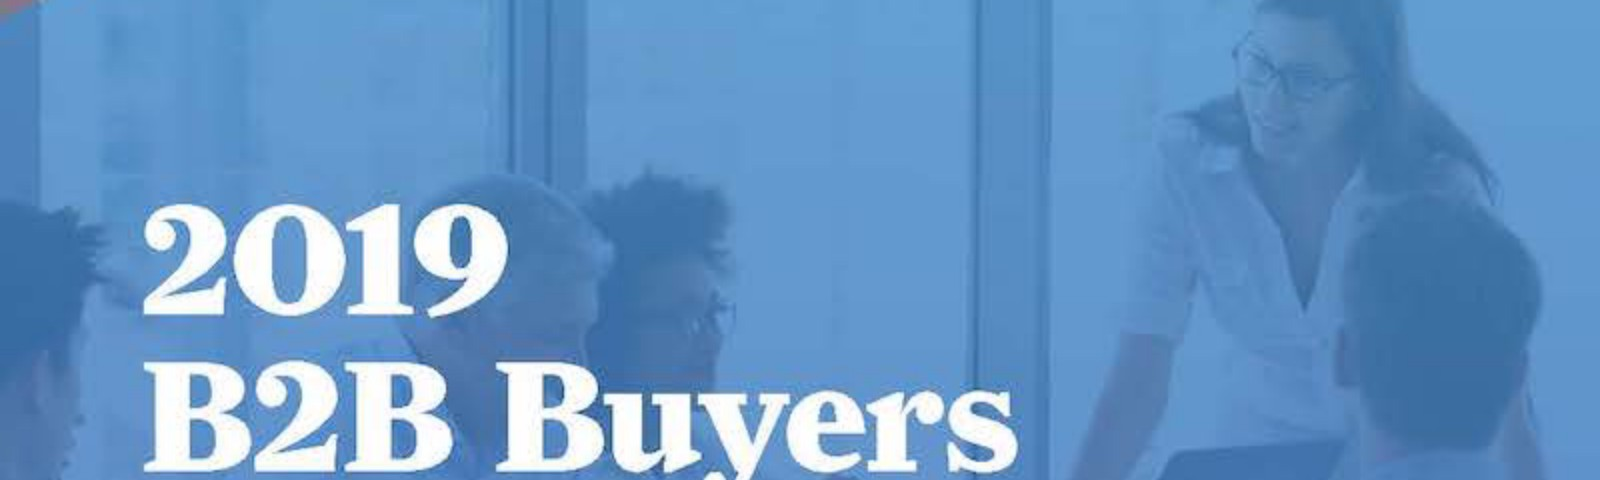 The 2019 DemandGen B2B Buyers Survey Report has important insights for intent data